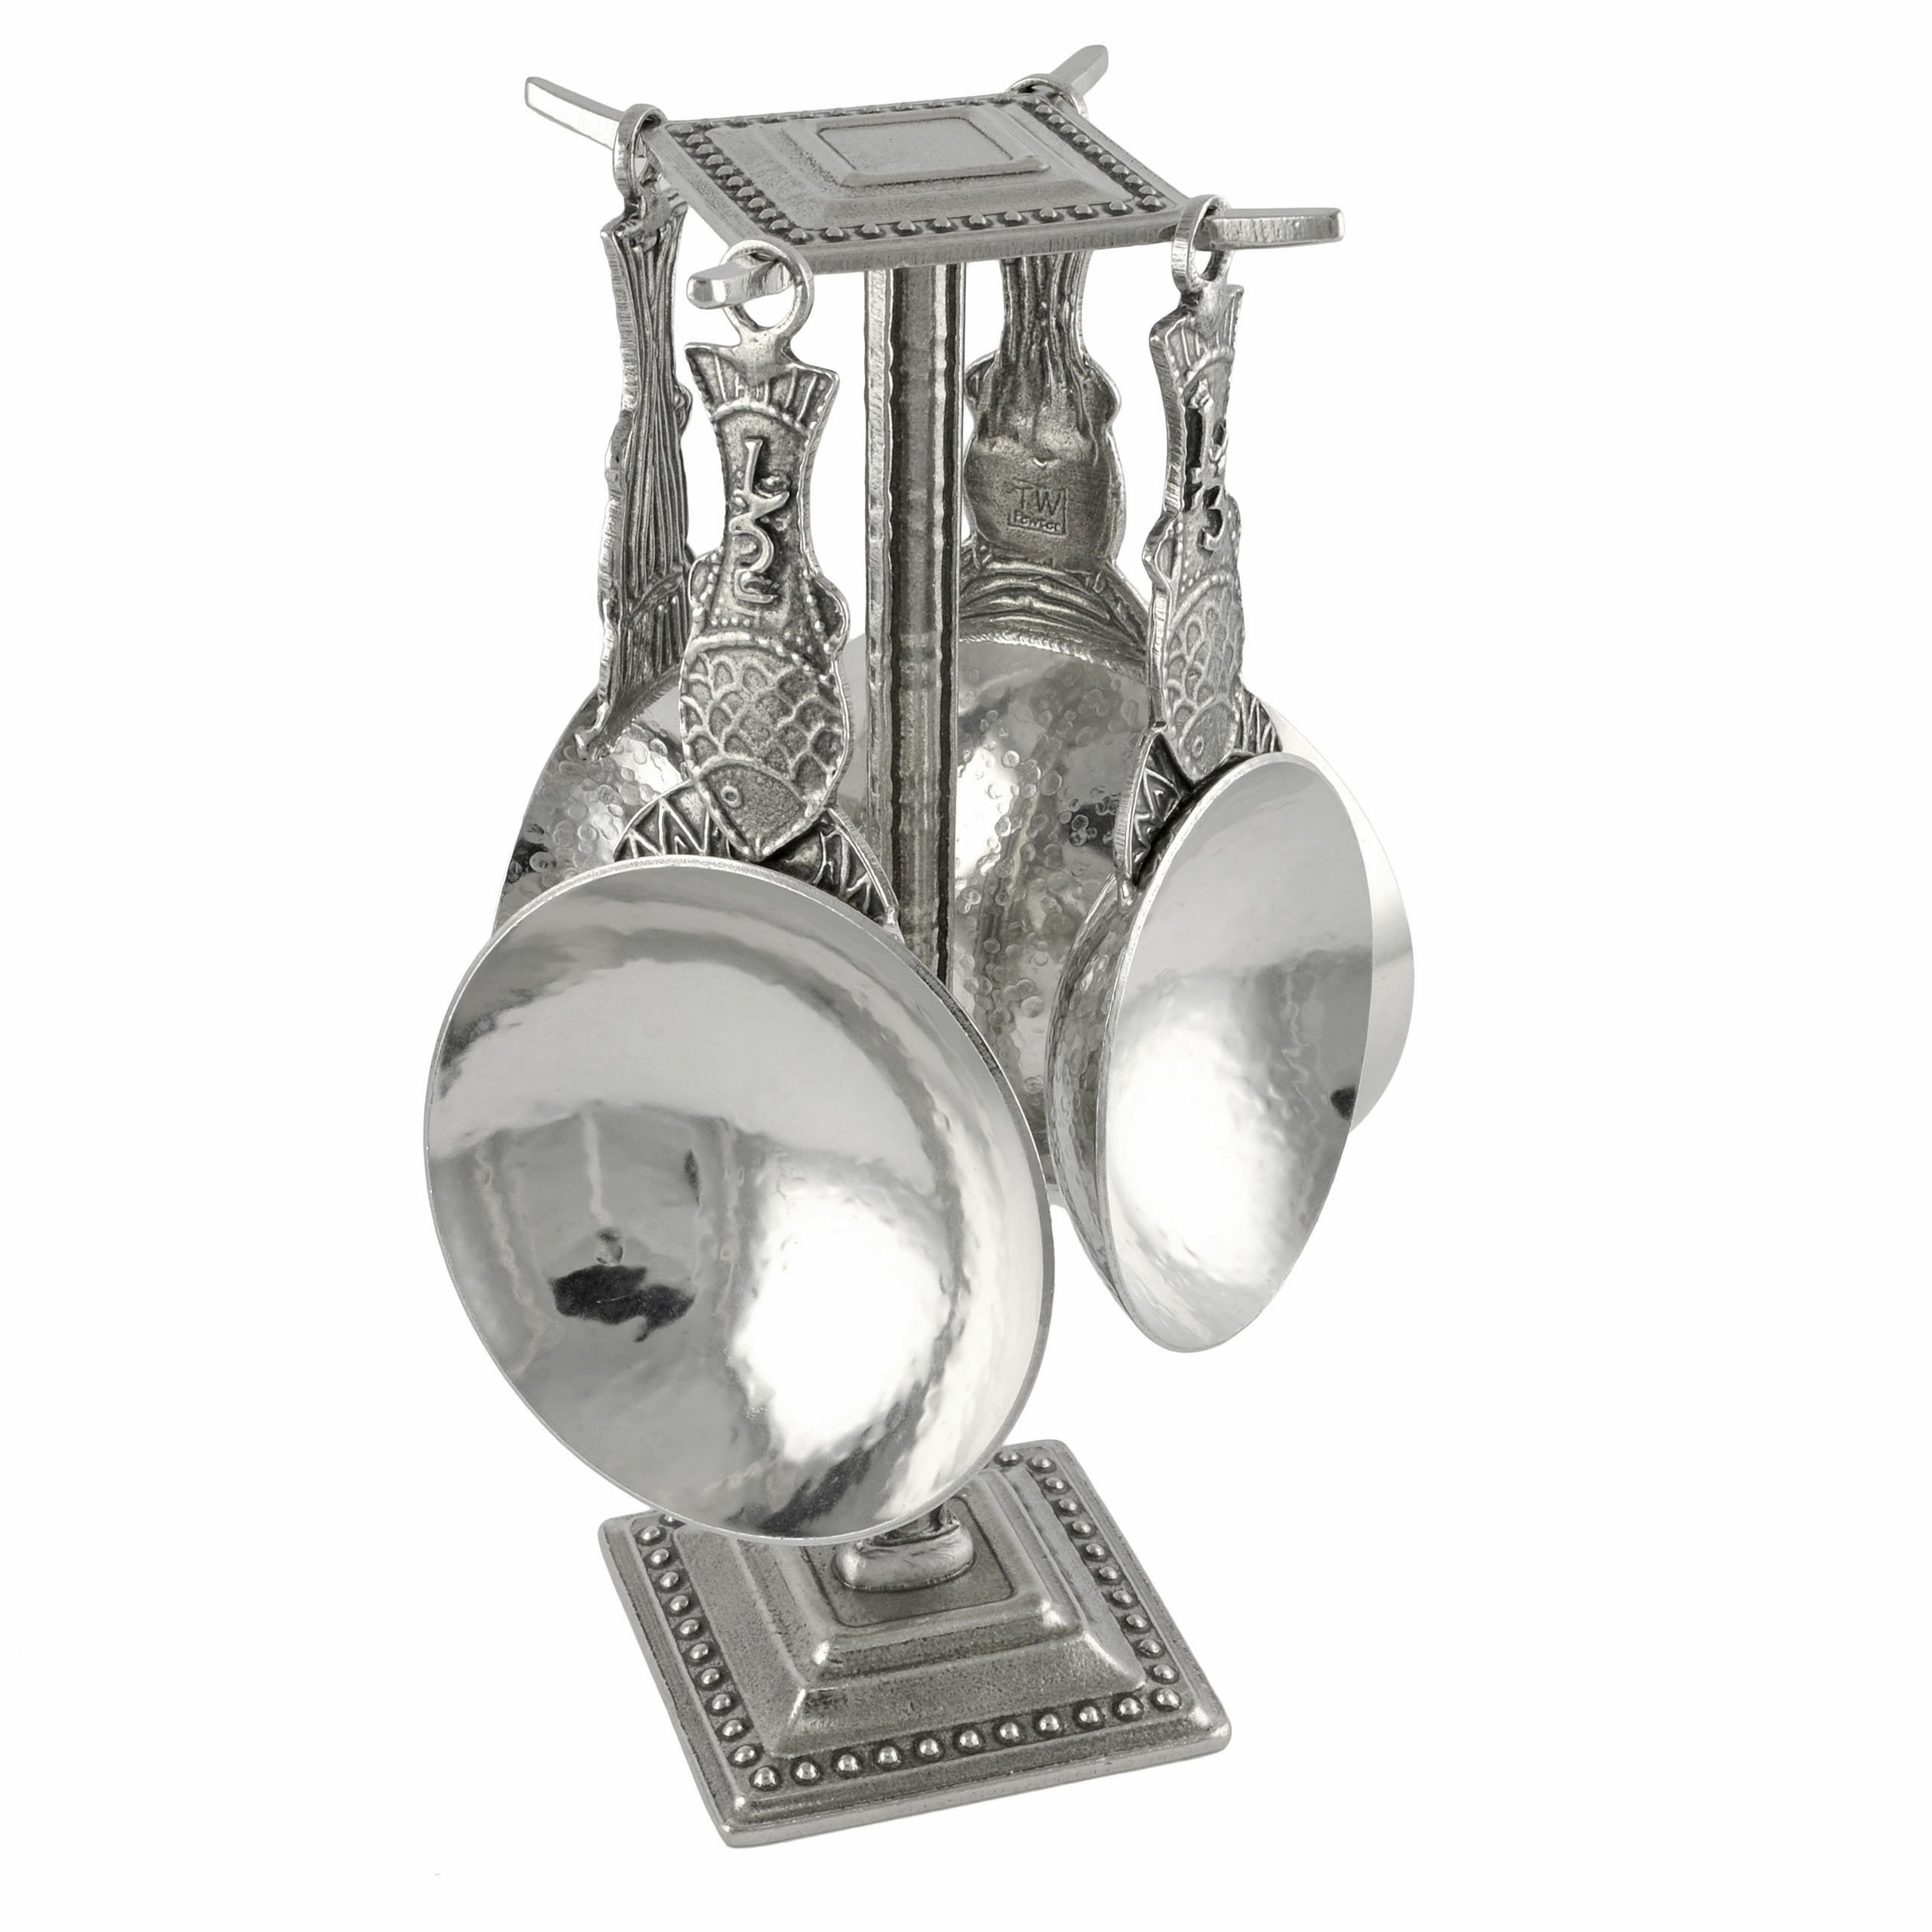 Crosby & Taylor Fish Pewter Measuring Cups with Display Post